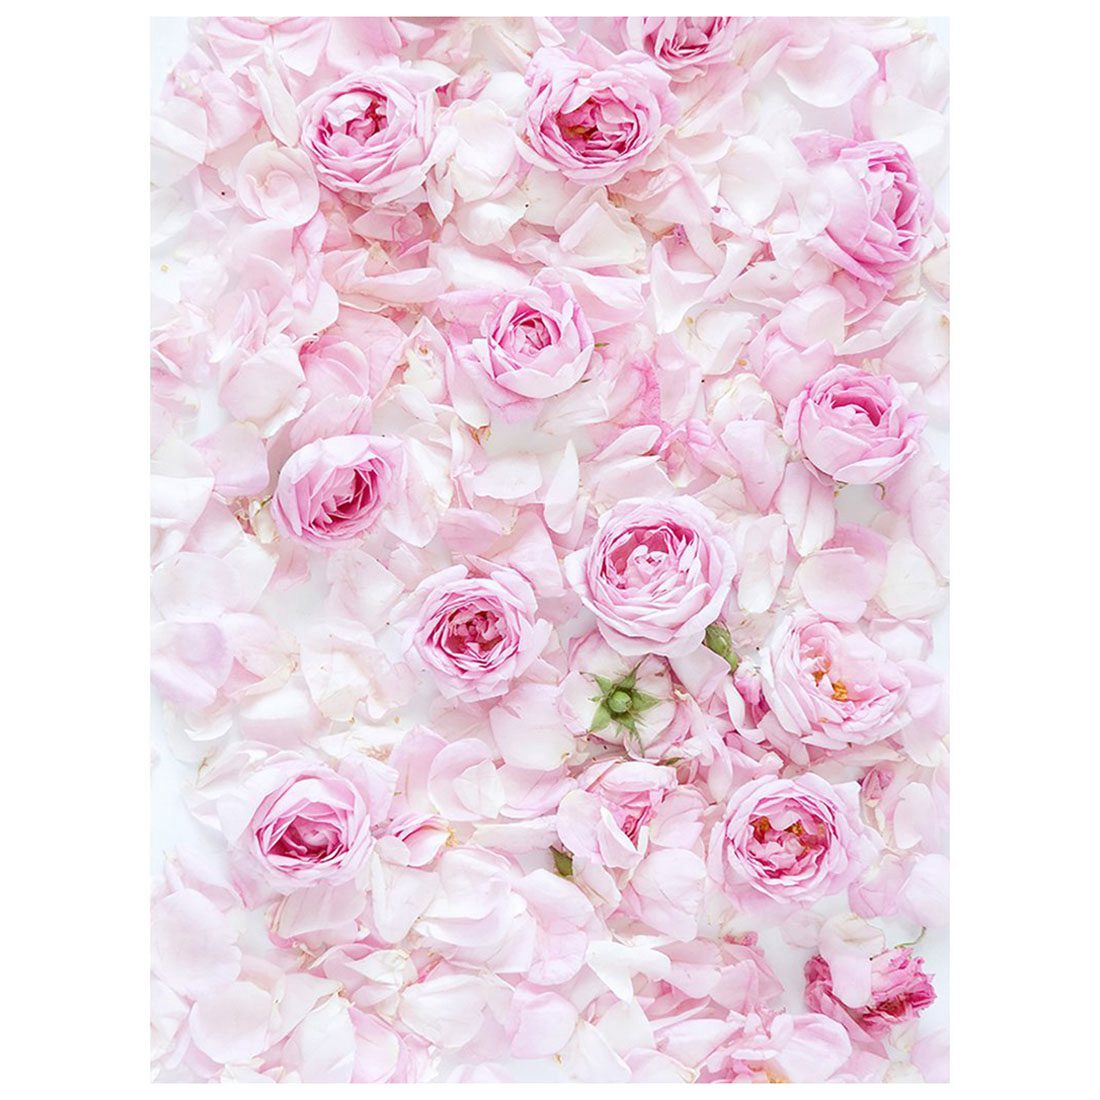 5x7ft Photography Backdrop Pink rose flower wall wedding love baby shower fresh background props photocall